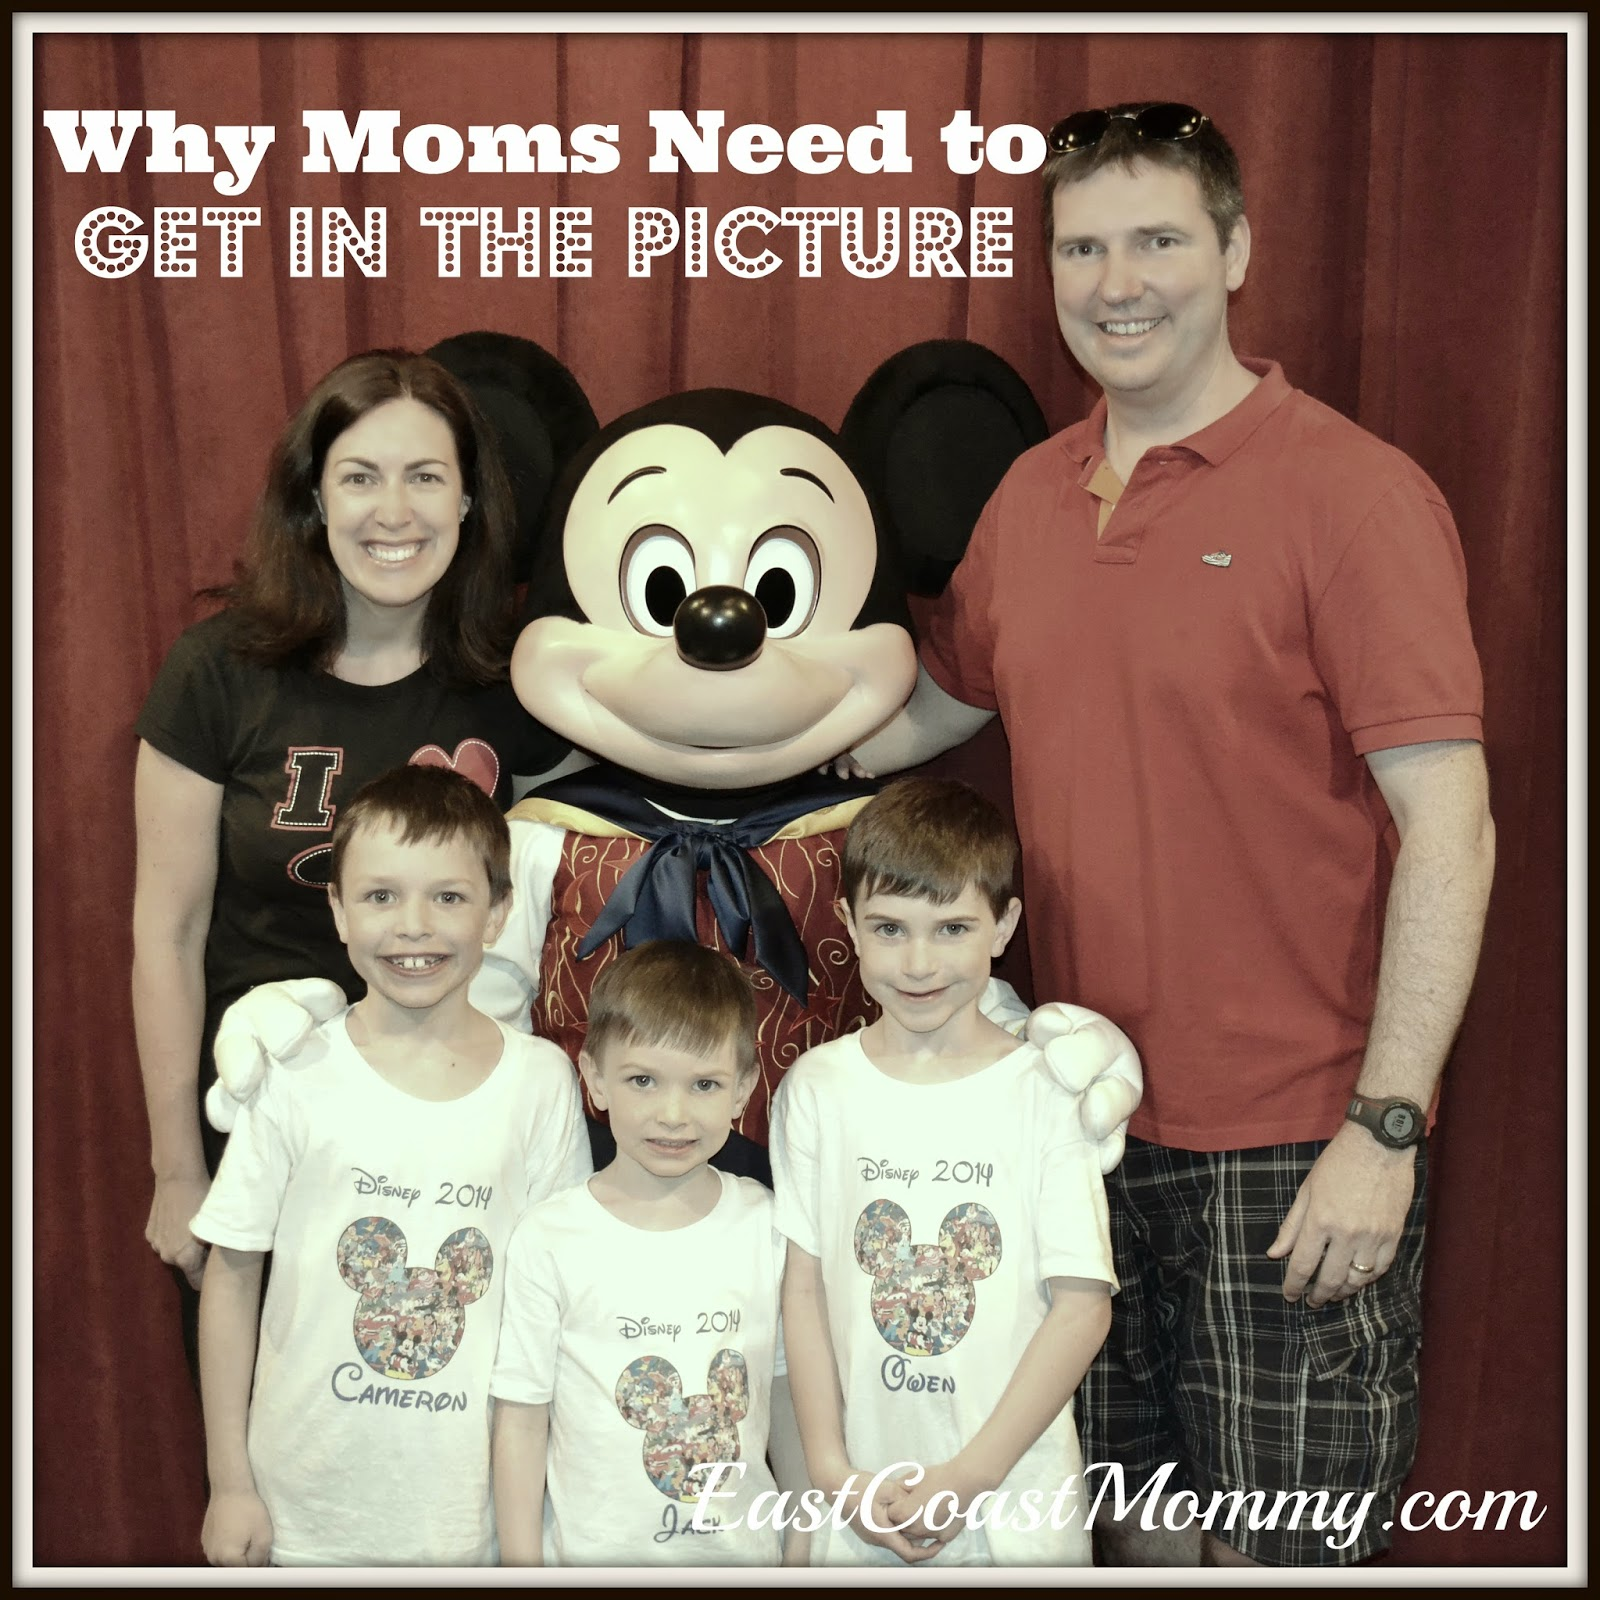 East Coast Mommy: Moms Need to Get in the Picture #754035